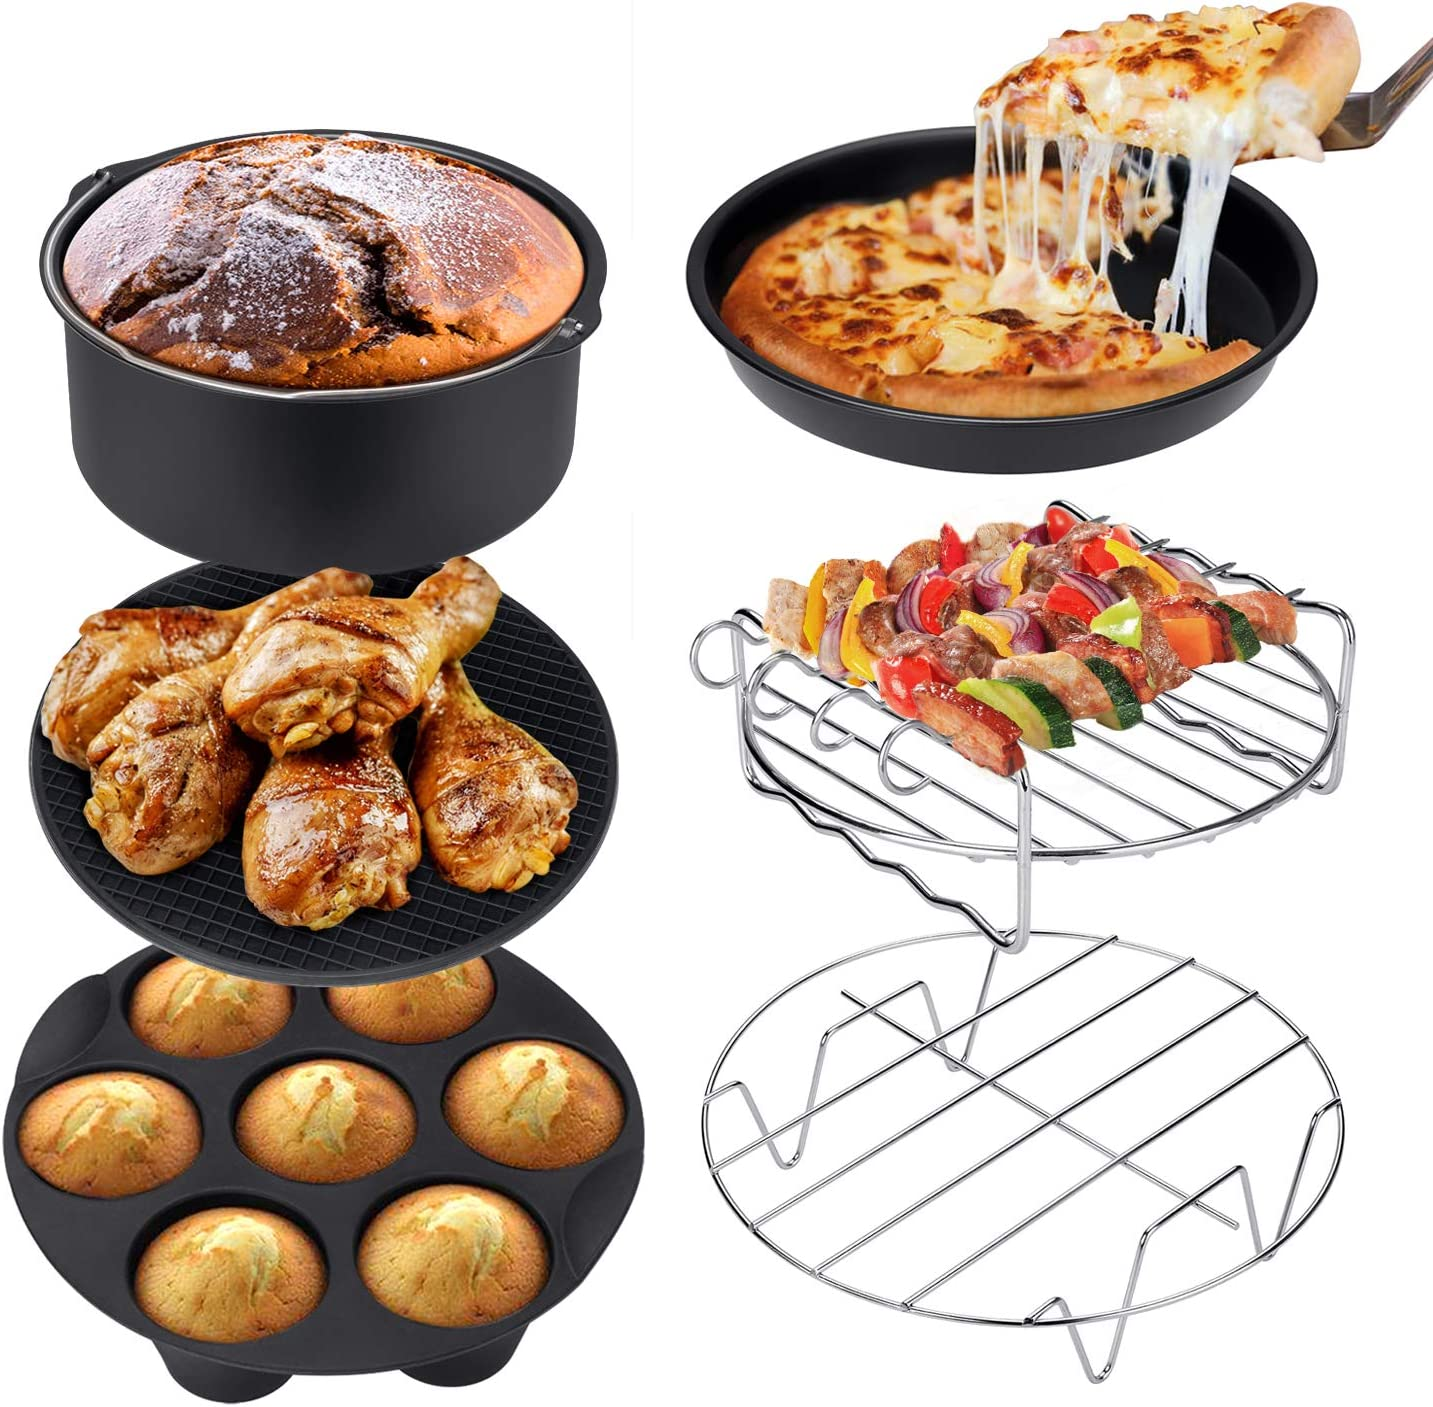 Ultrean Air Fryer Accessories,Set of 6 Fit All 5.8Qt,6Qt Air Fryers,BPA Free,Non-Stick,Dishwasher Safe,XL